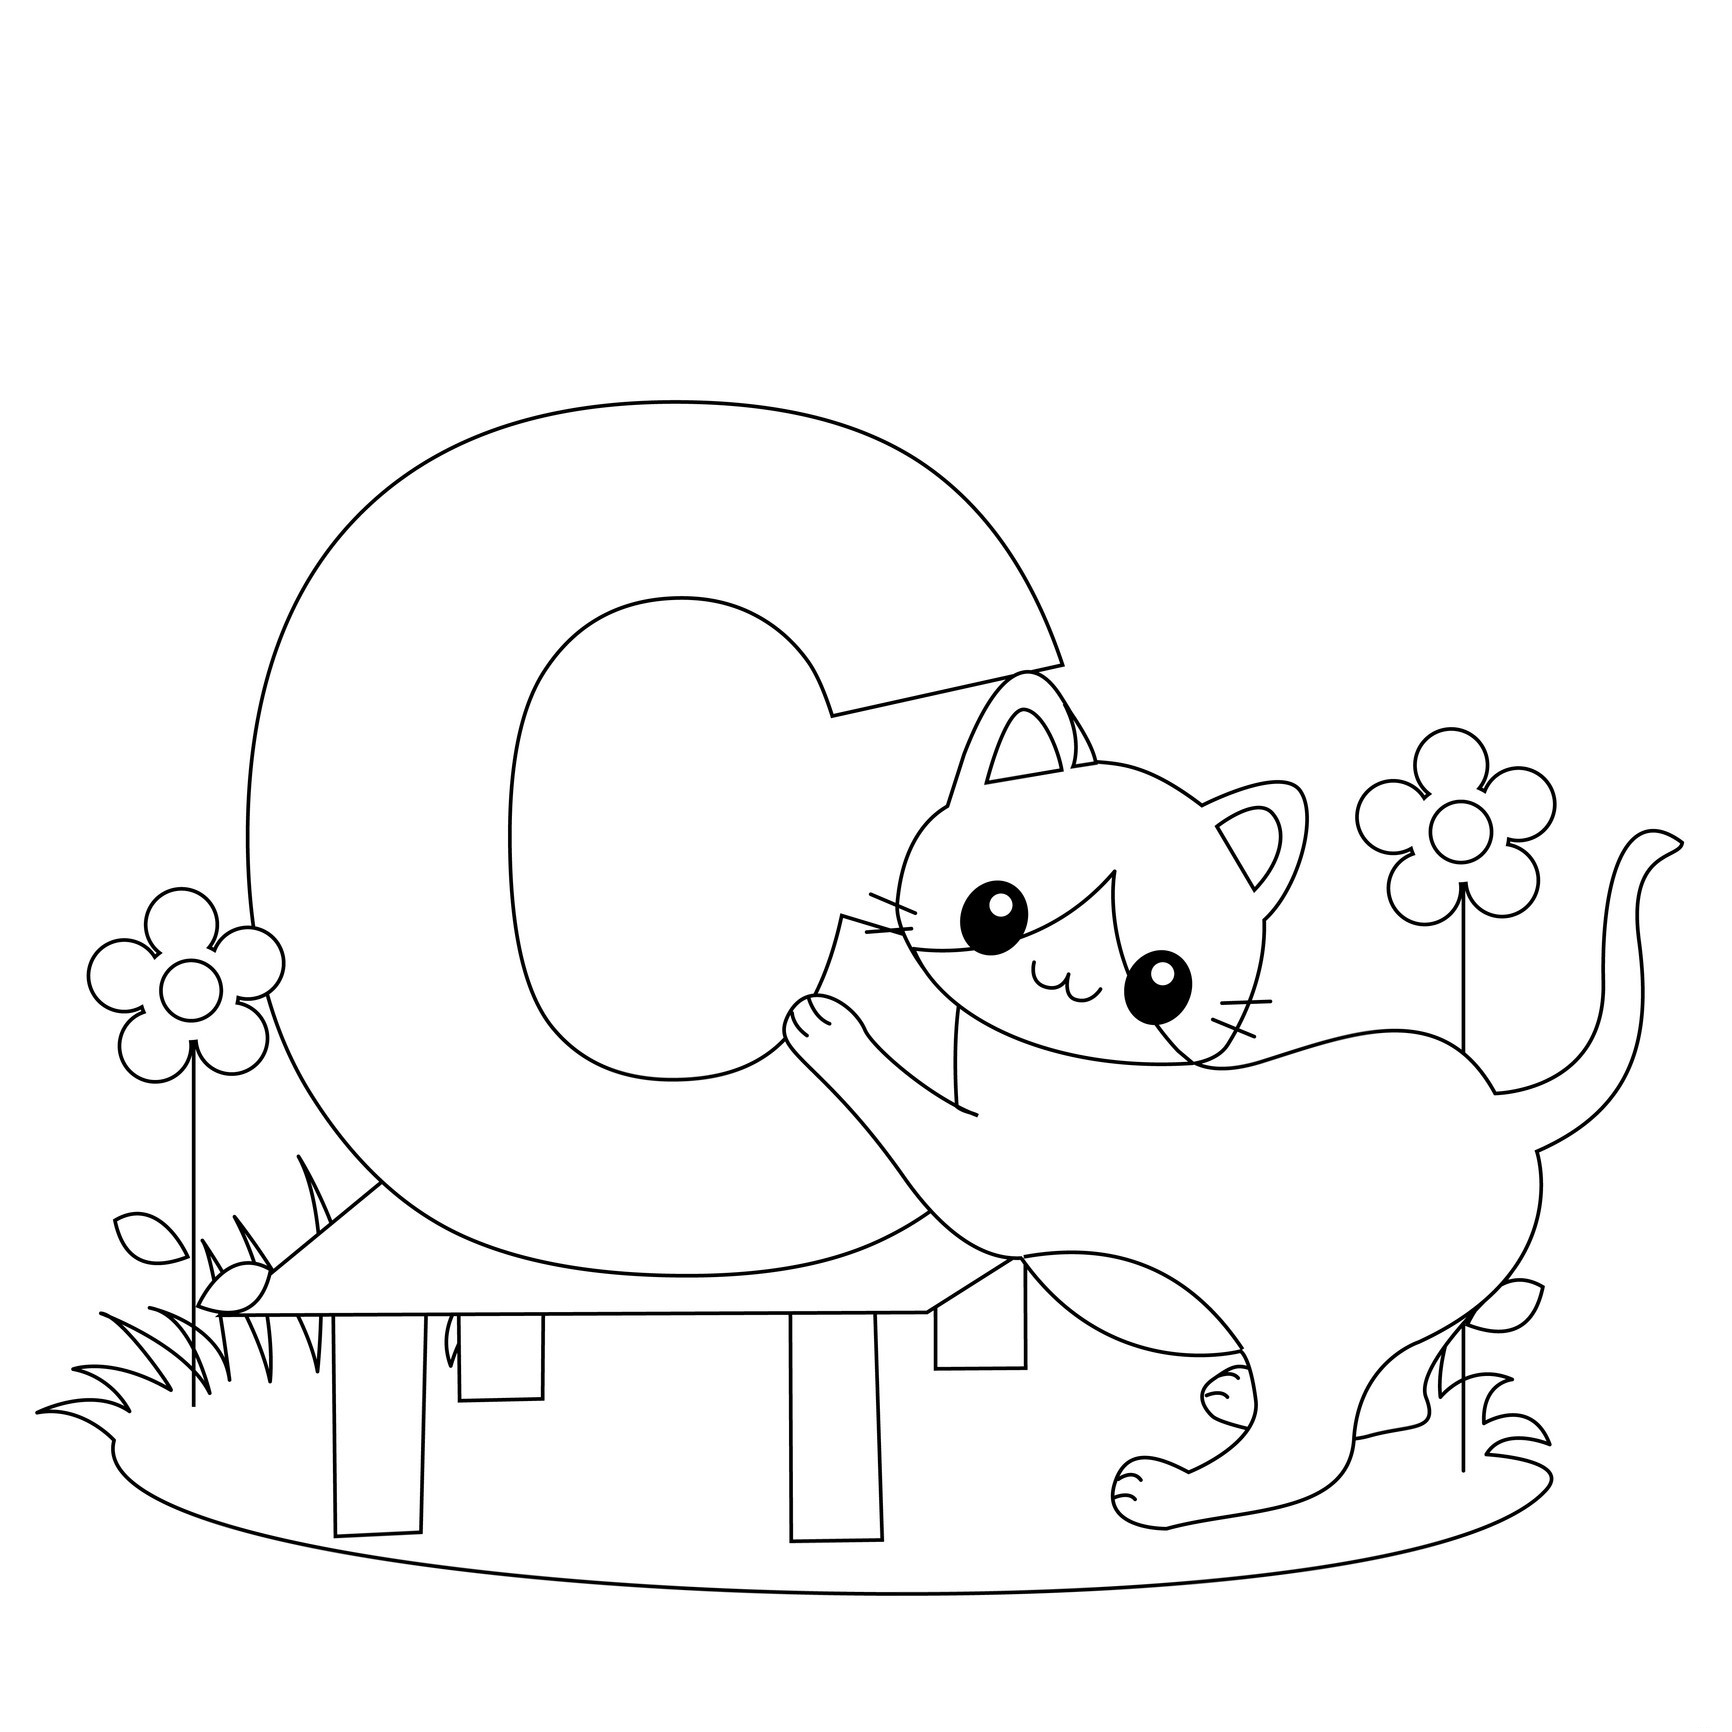 letter c coloring pages for preschoolers alphabet coloring pages alphabet coloring pages c preschoolers pages coloring for letter